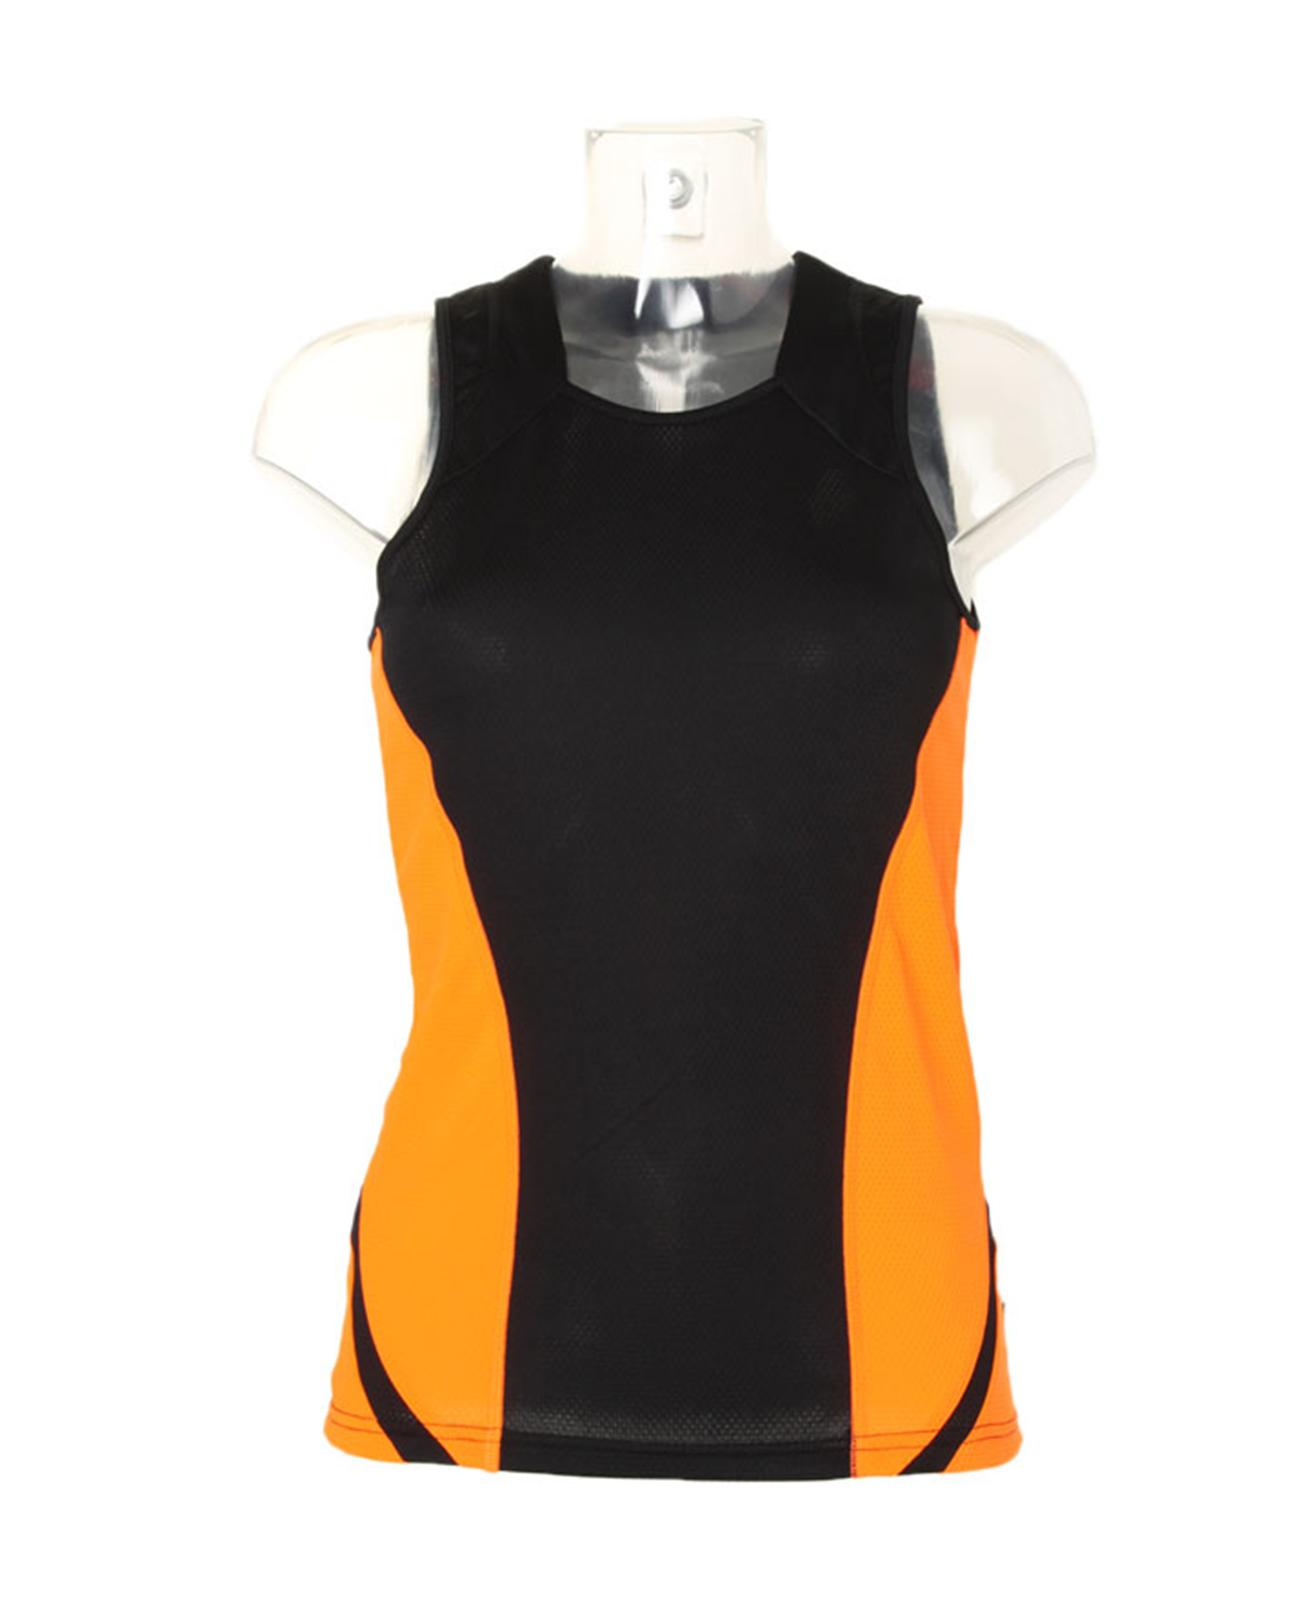 9a81dc06fcf Womens Ladies Cool Tex Sports Running Vest Top 5 colours Size 8 10 ...